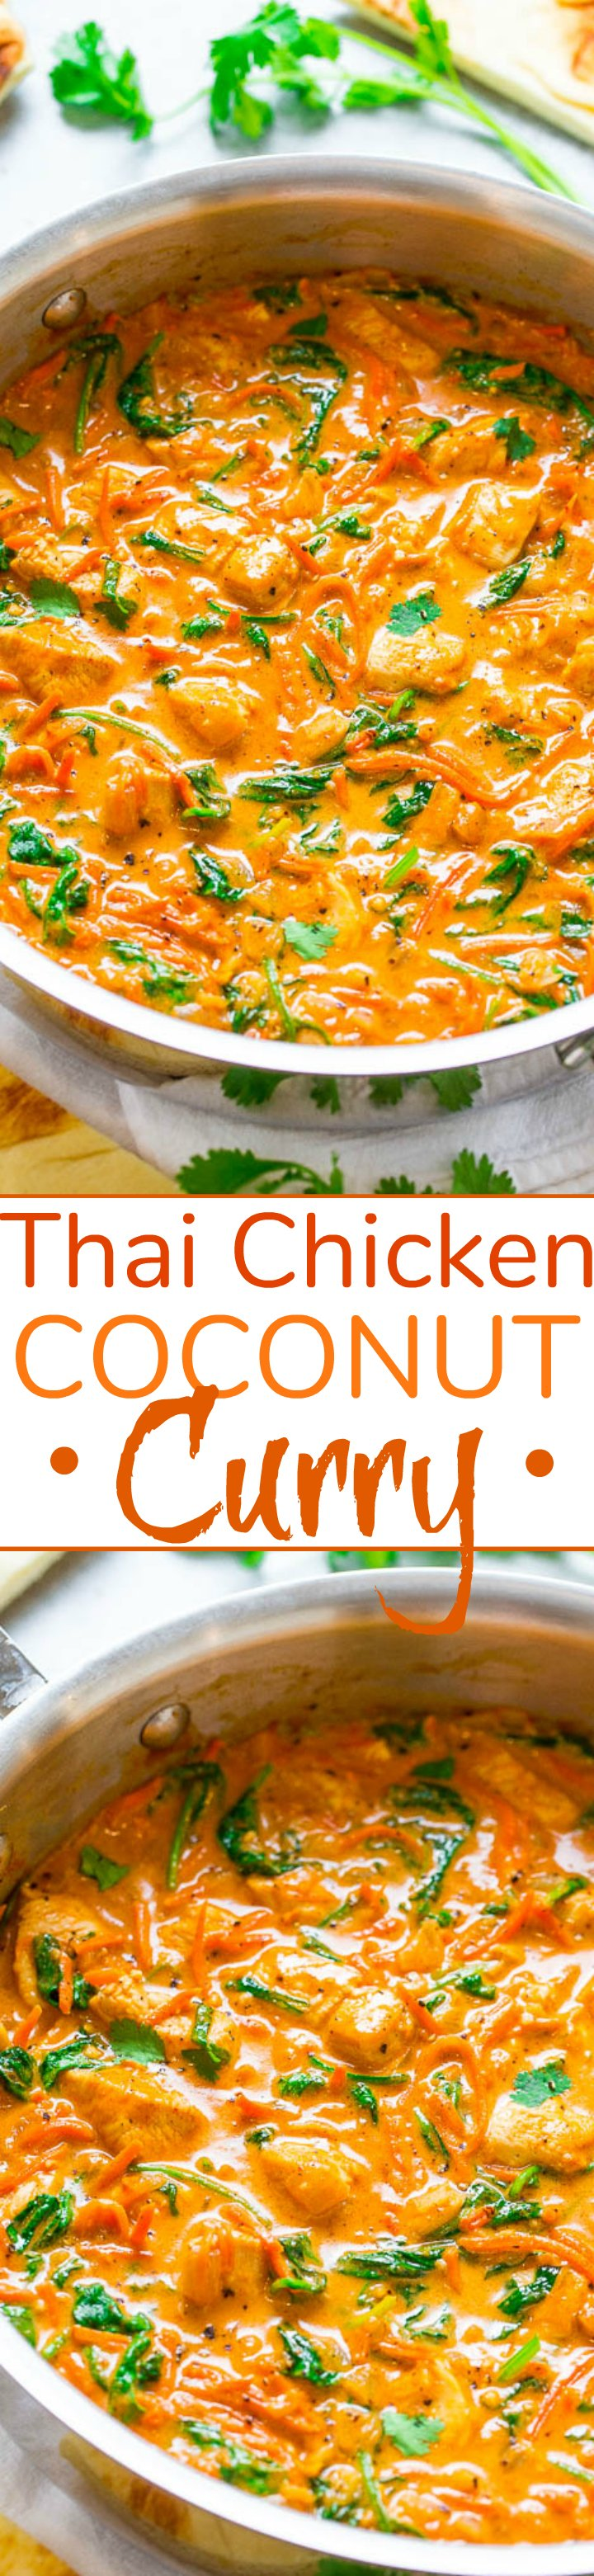 Thai Chicken Coconut Curry - An EASY one-skillet curry that's ready in 20 minutes and is layered with so many fabulous flavors!! Low-cal, low-carb, and HEALTHY but tastes like comfort food!!